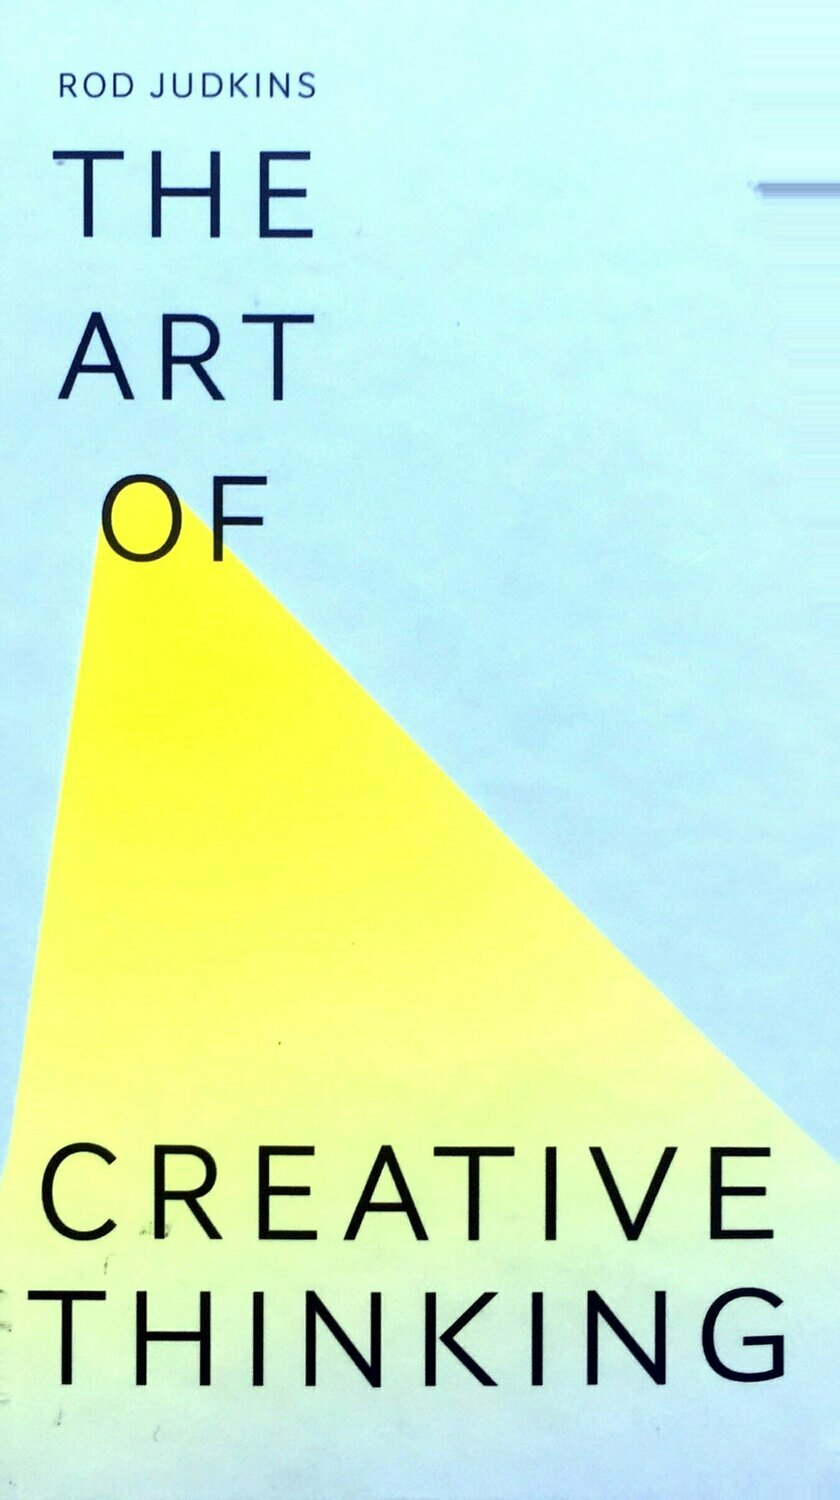 Art of Creative Thinking; Judkins Rod